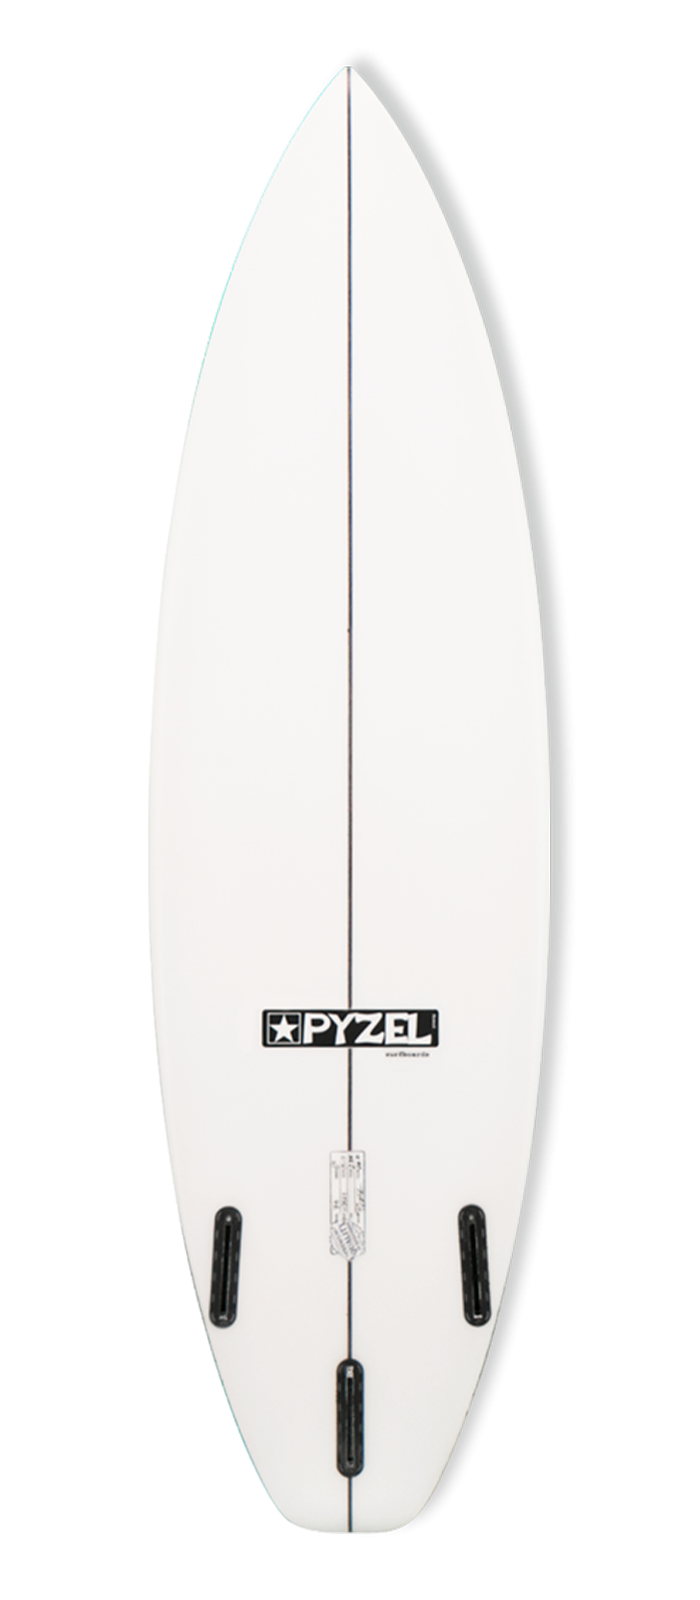 74 surfboard model bottom